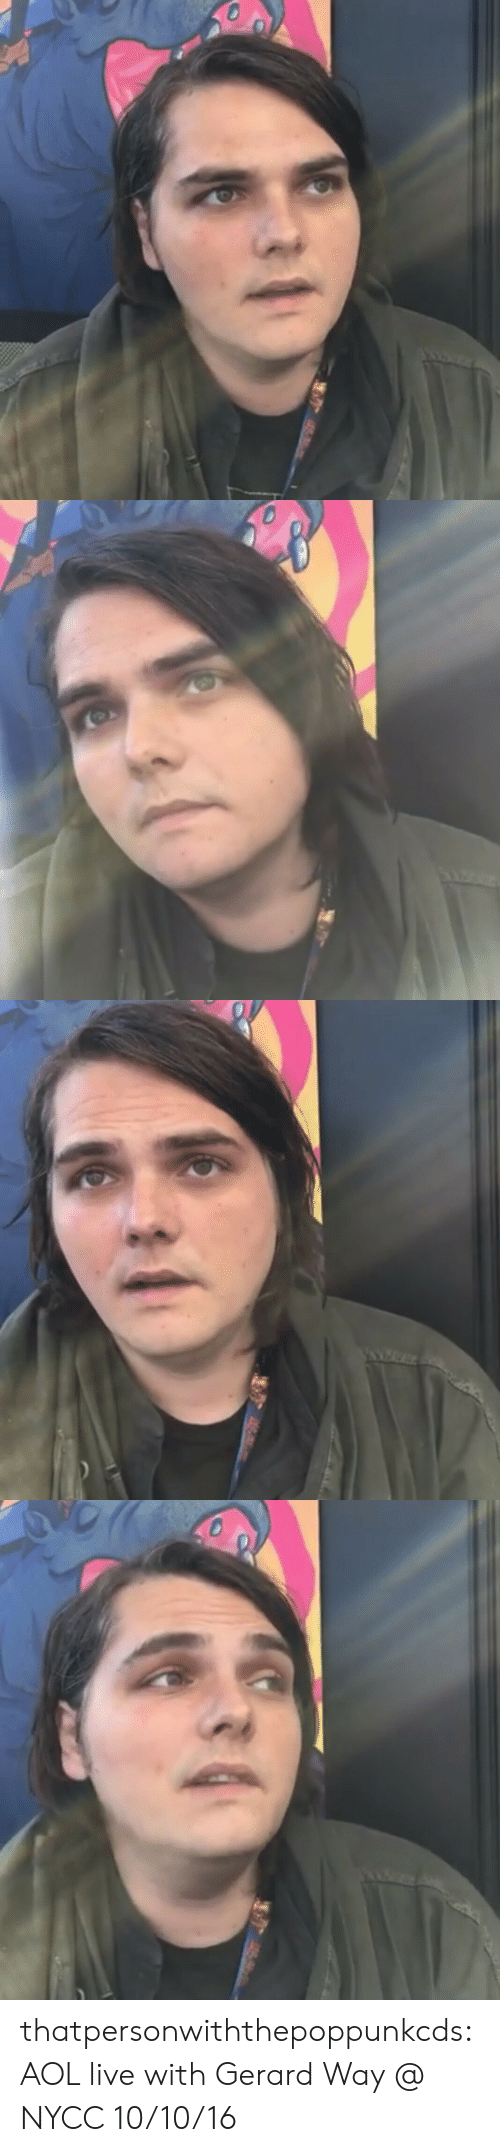 Facebook, Tumblr, and Blog: thatpersonwiththepoppunkcds:  AOL live with Gerard Way @ NYCC 10/10/16